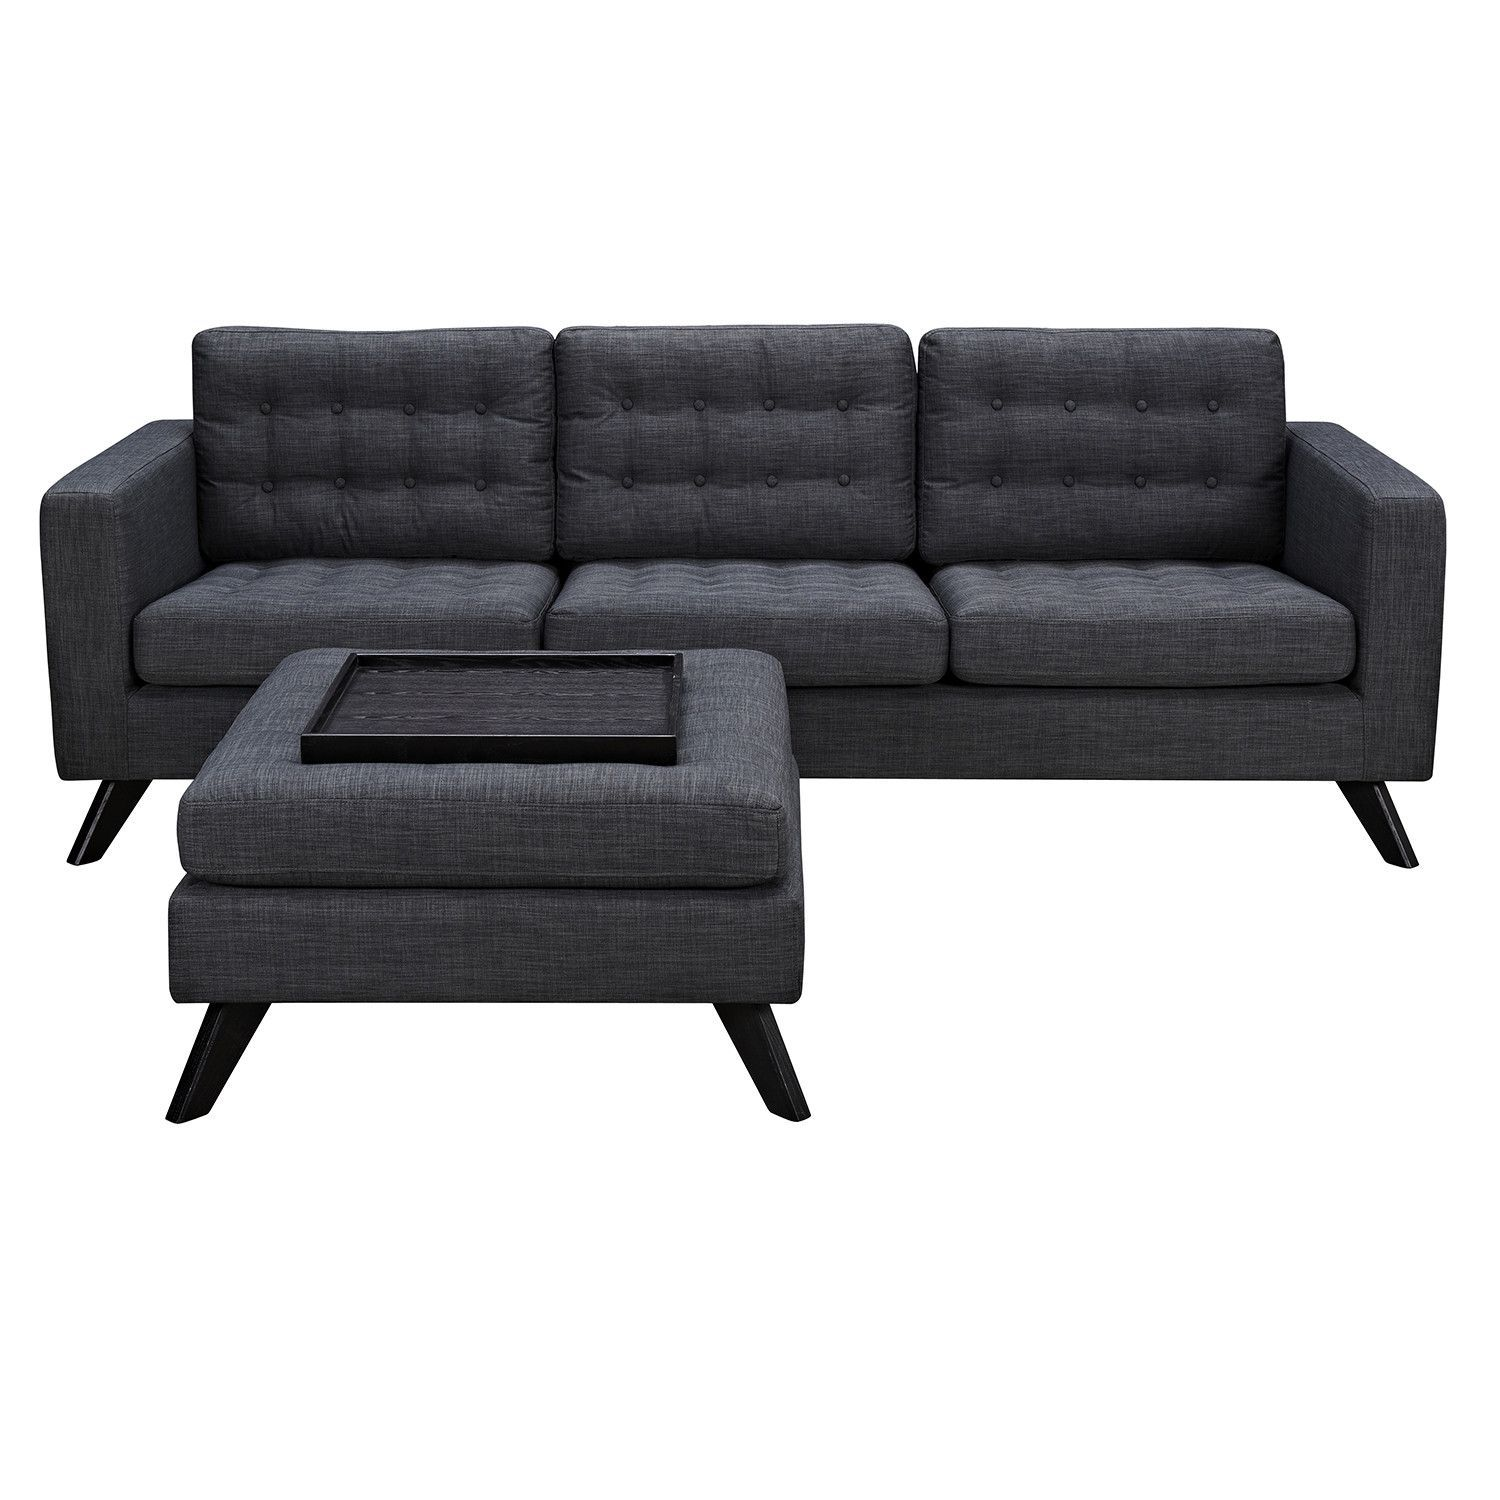 Best Charcoal Gray Mina Sofa Set – First Of A Kind Grey Sofa 400 x 300